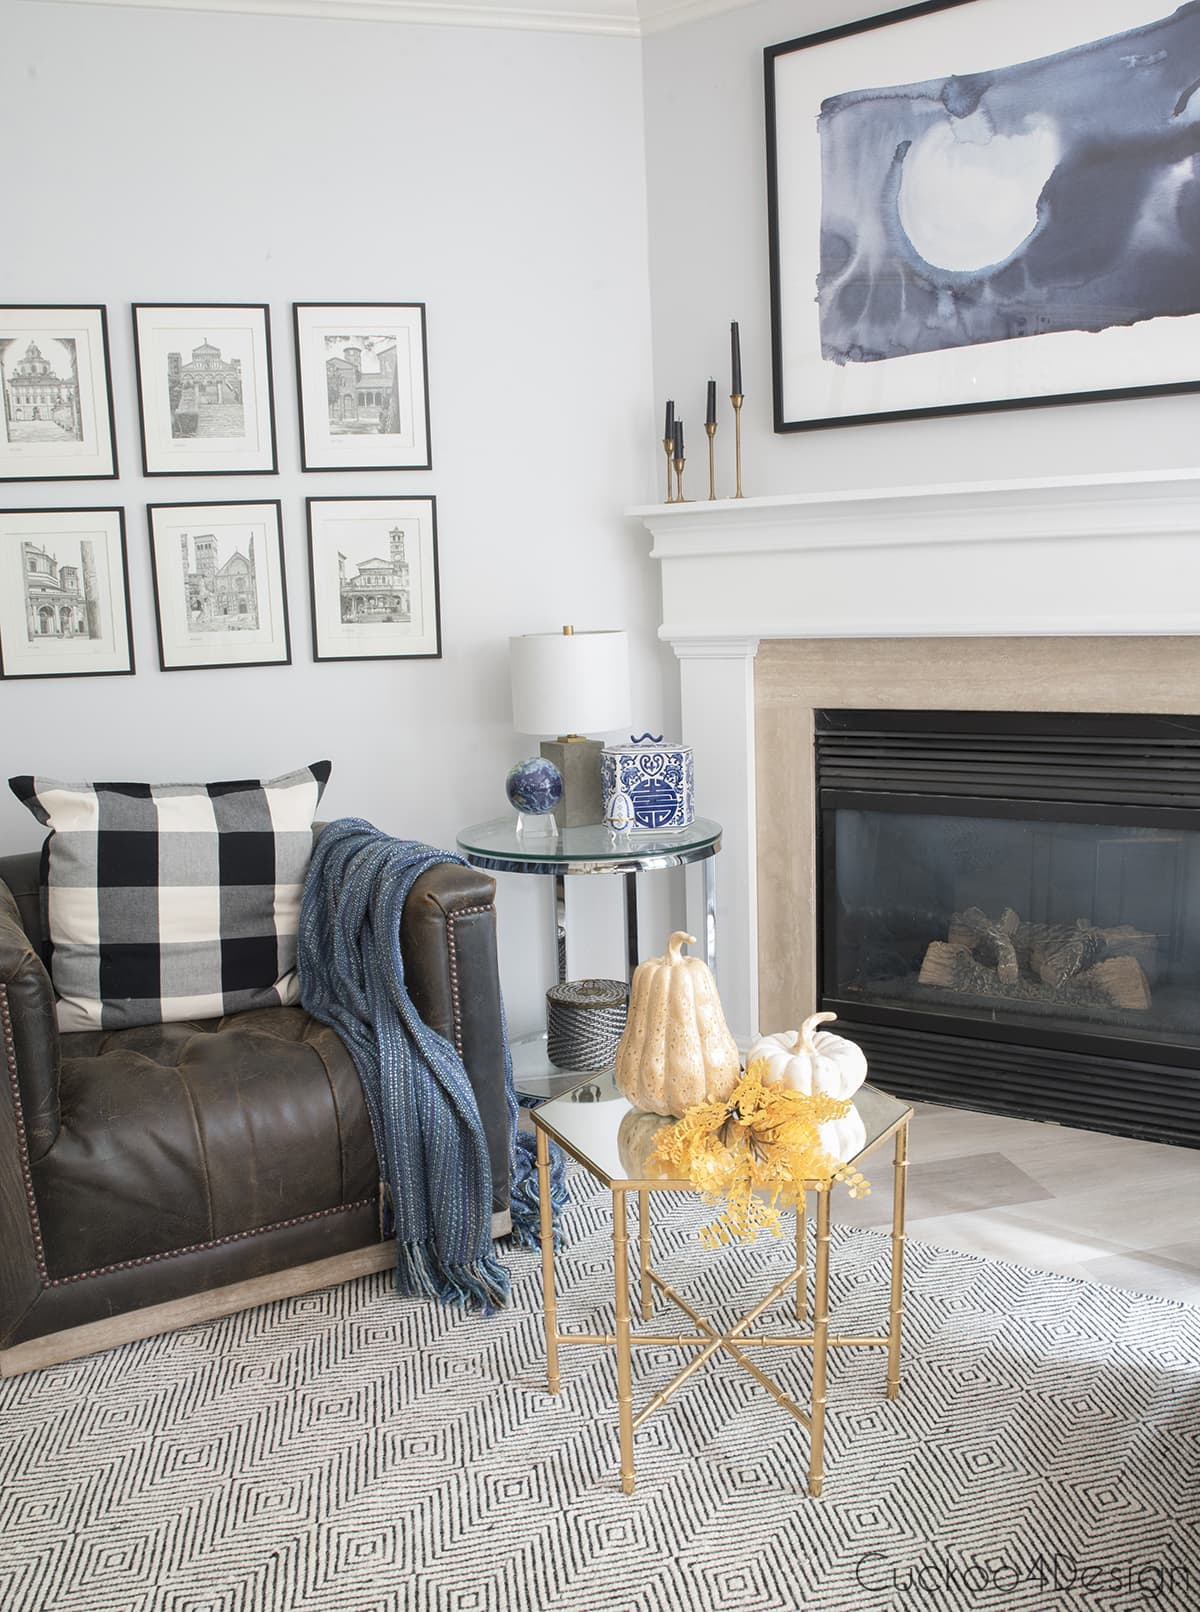 fireplace area with leather swivel chairs and blue accents